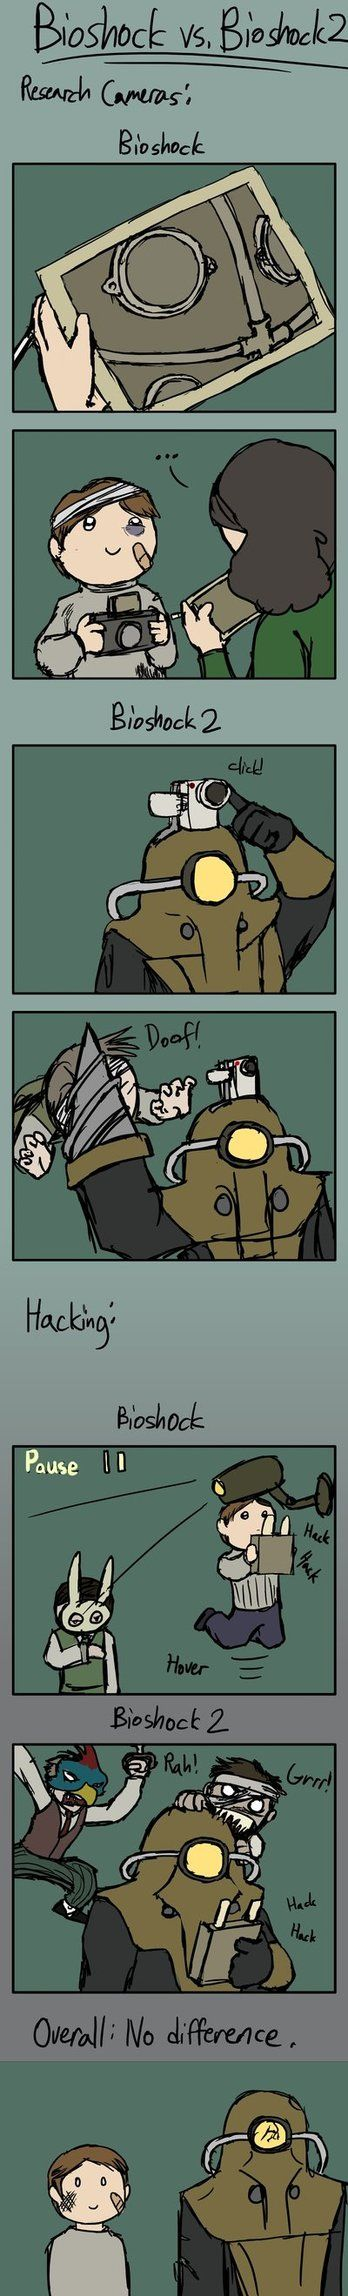 Bioshock 1 vs. Bioshock 2 by Pandadrake on DeviantArt (Poor Jack.)